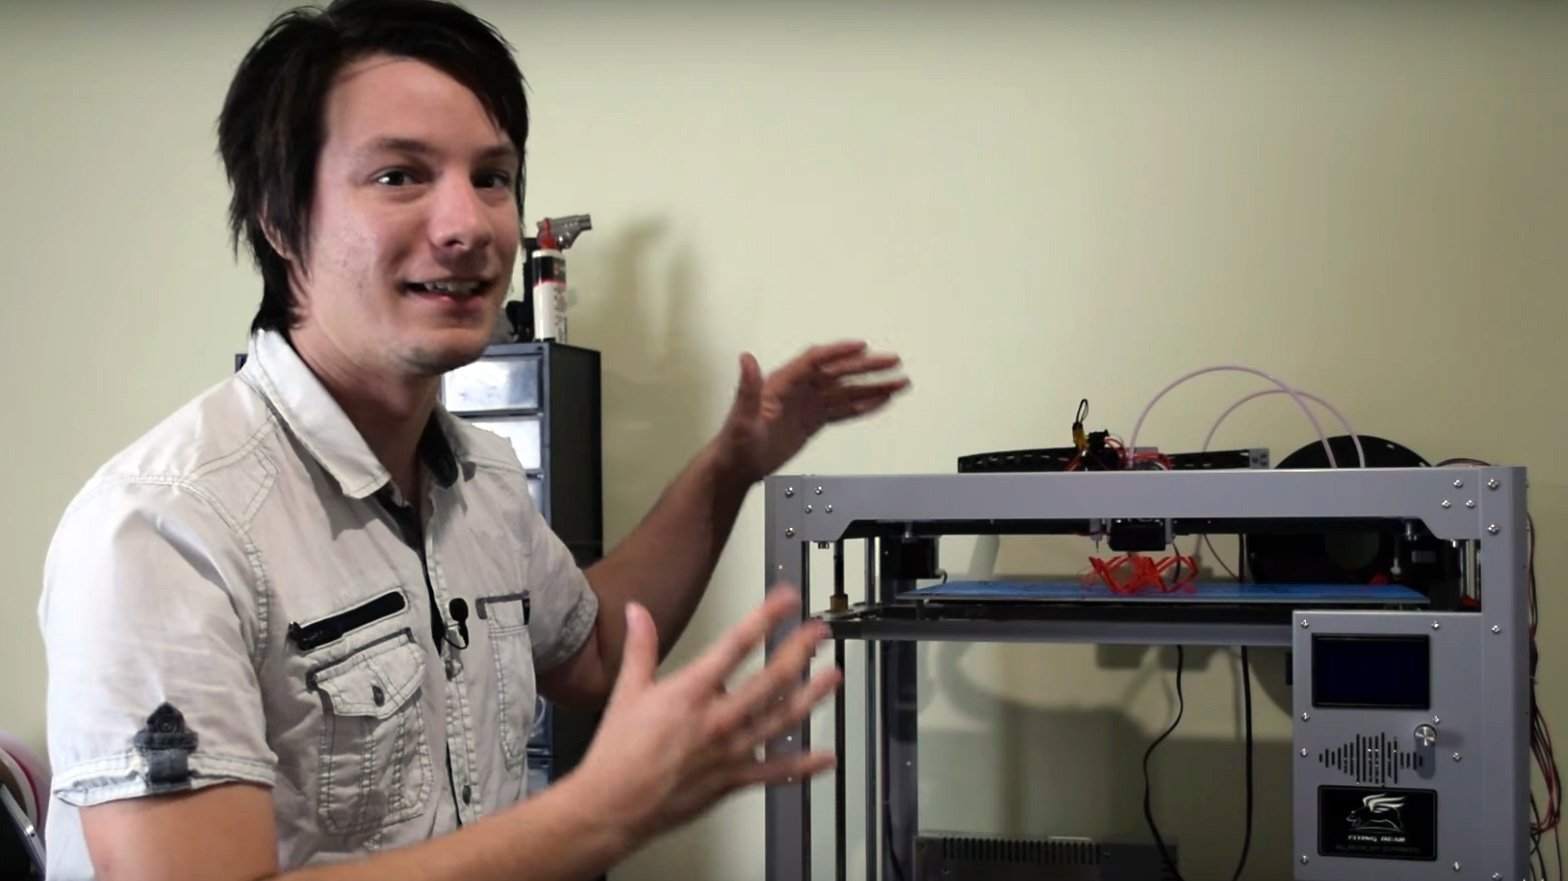 3D Printing YouTube Channel Maker's Muse Cries Foul at Flying Bear   All3DP